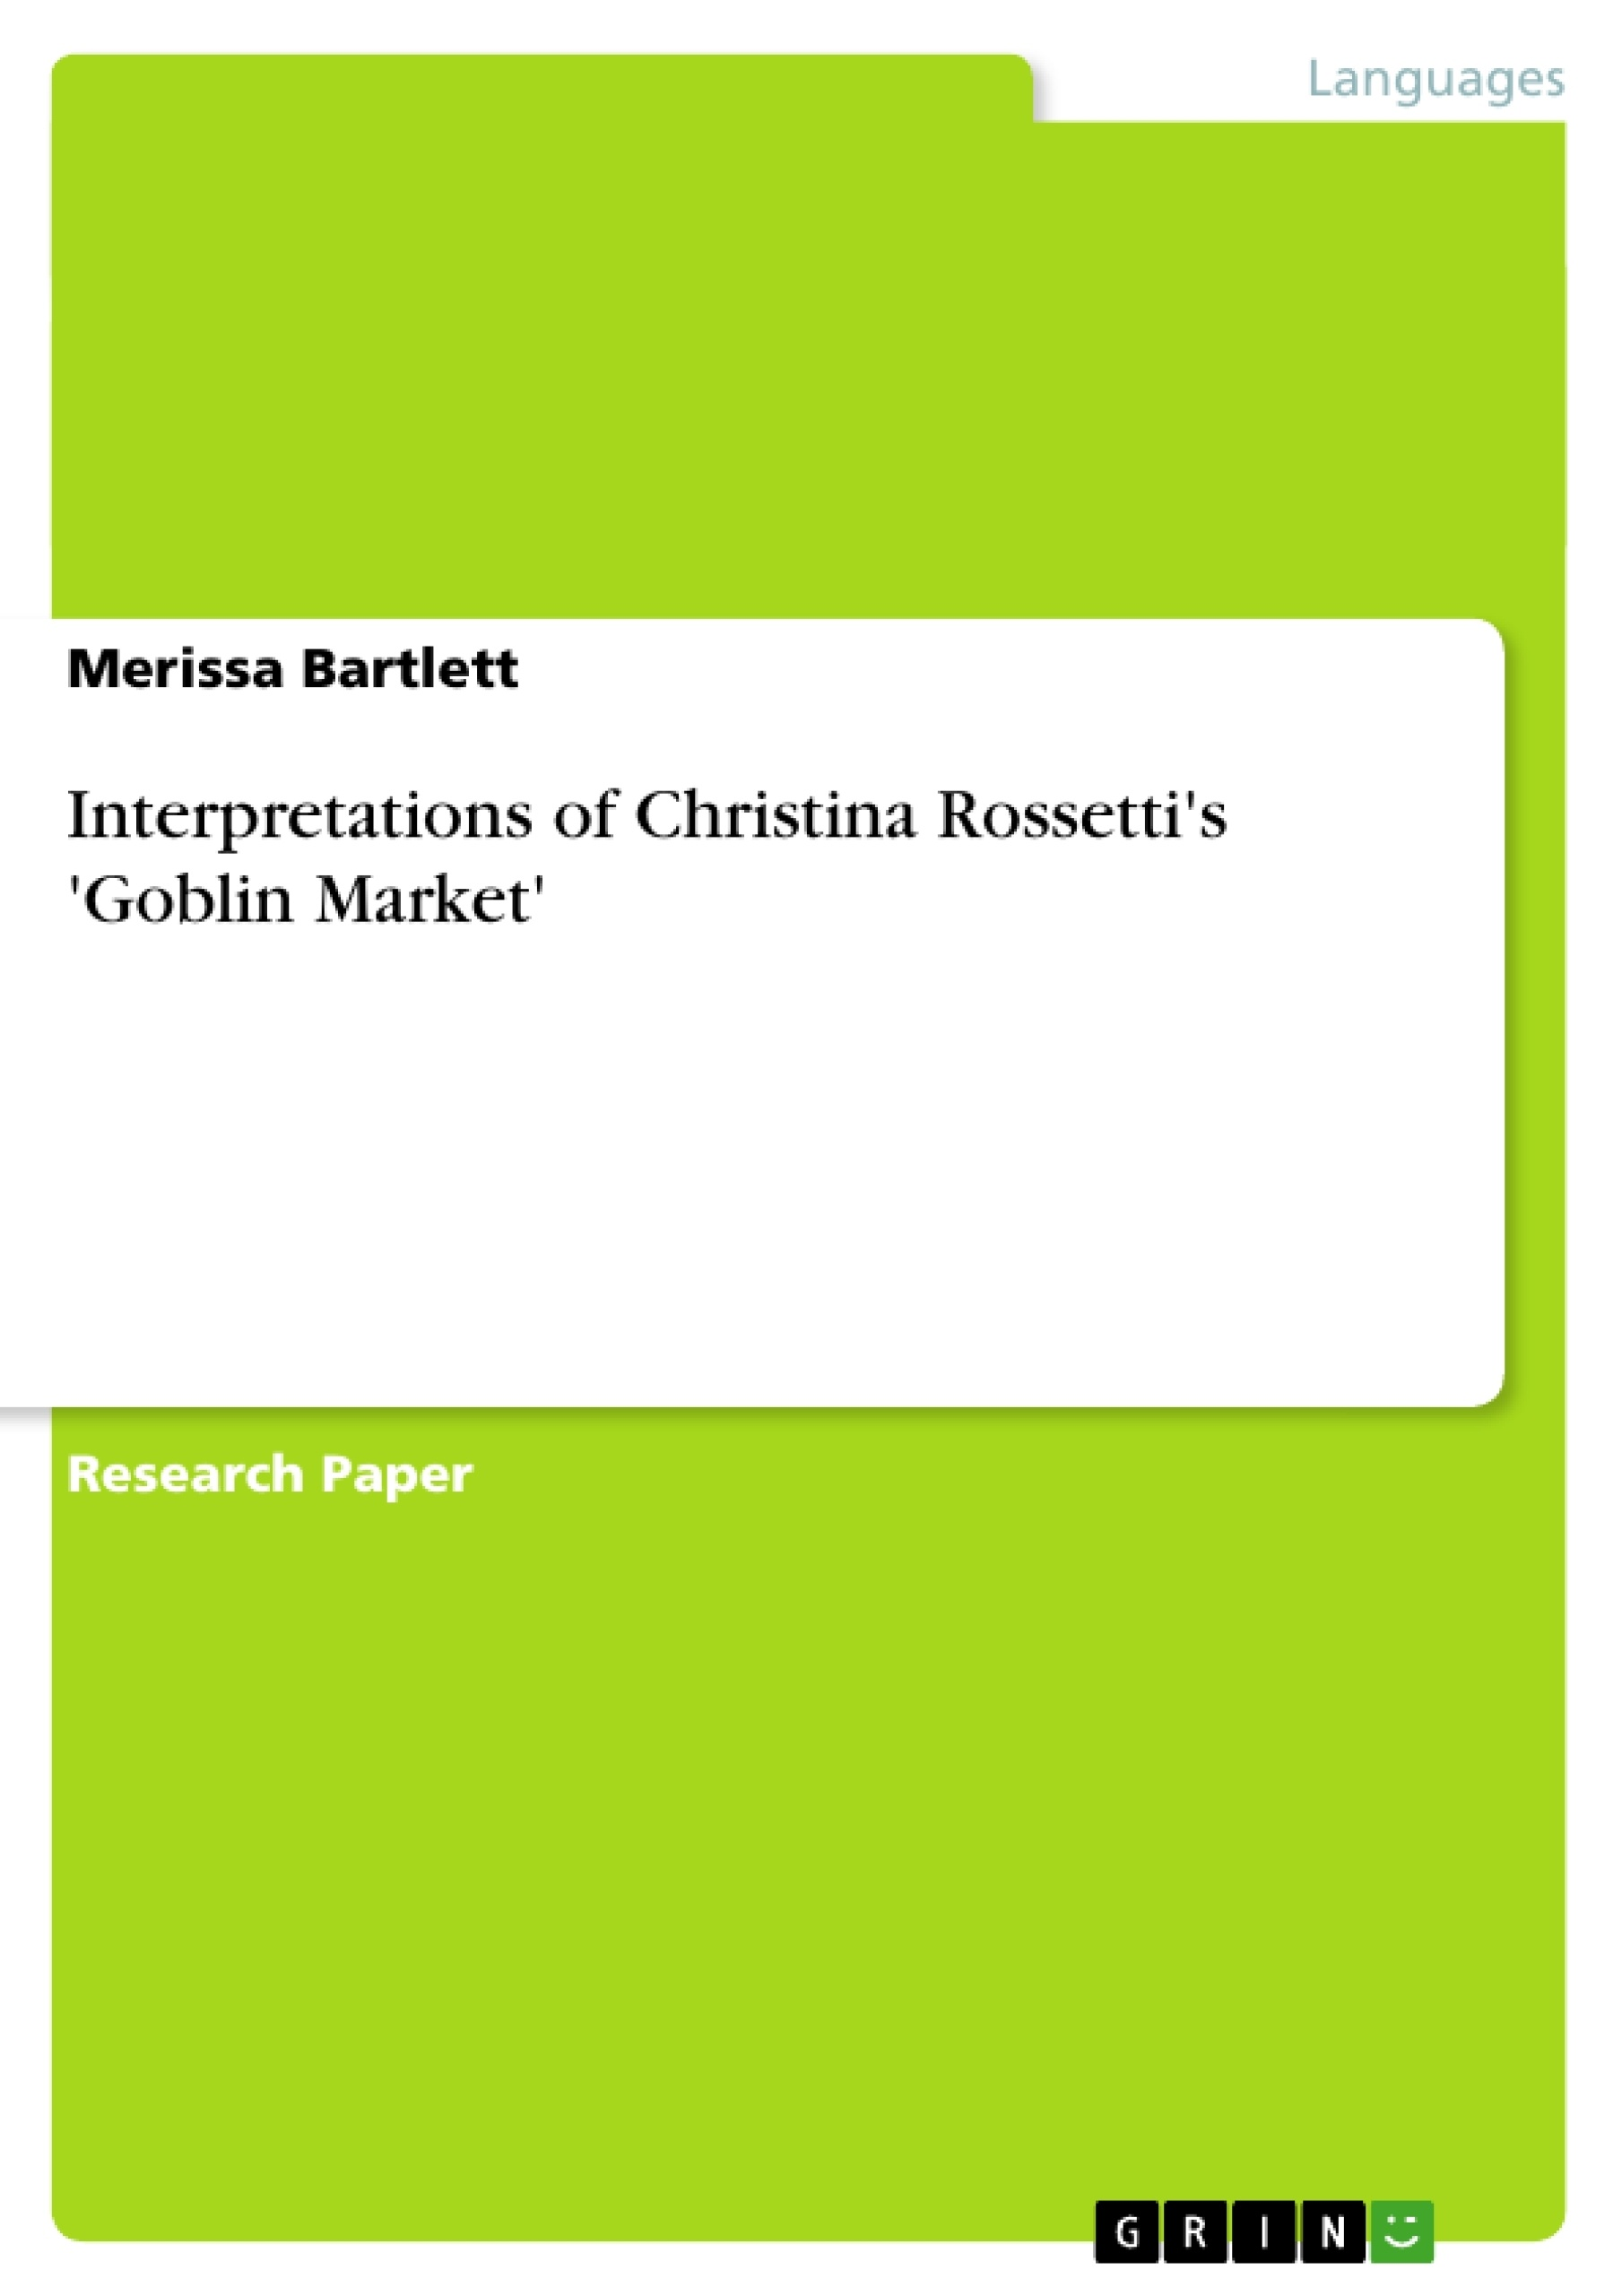 essays on goblin market